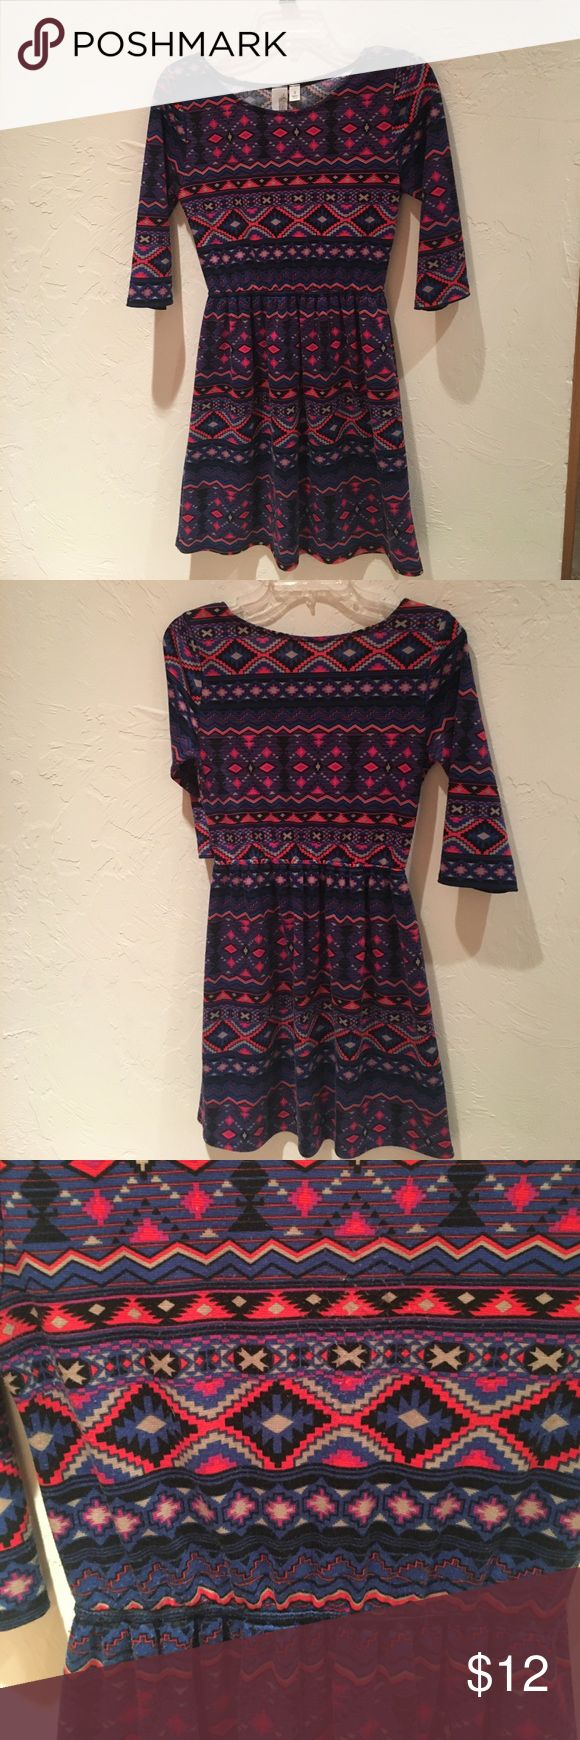 Dress Aztec patterned dress. 3/4 sleeves. Cinches around waist. From Francesca's. Some balling of the material on the chest and around elbows. Hard to see when on. Dresses Mini